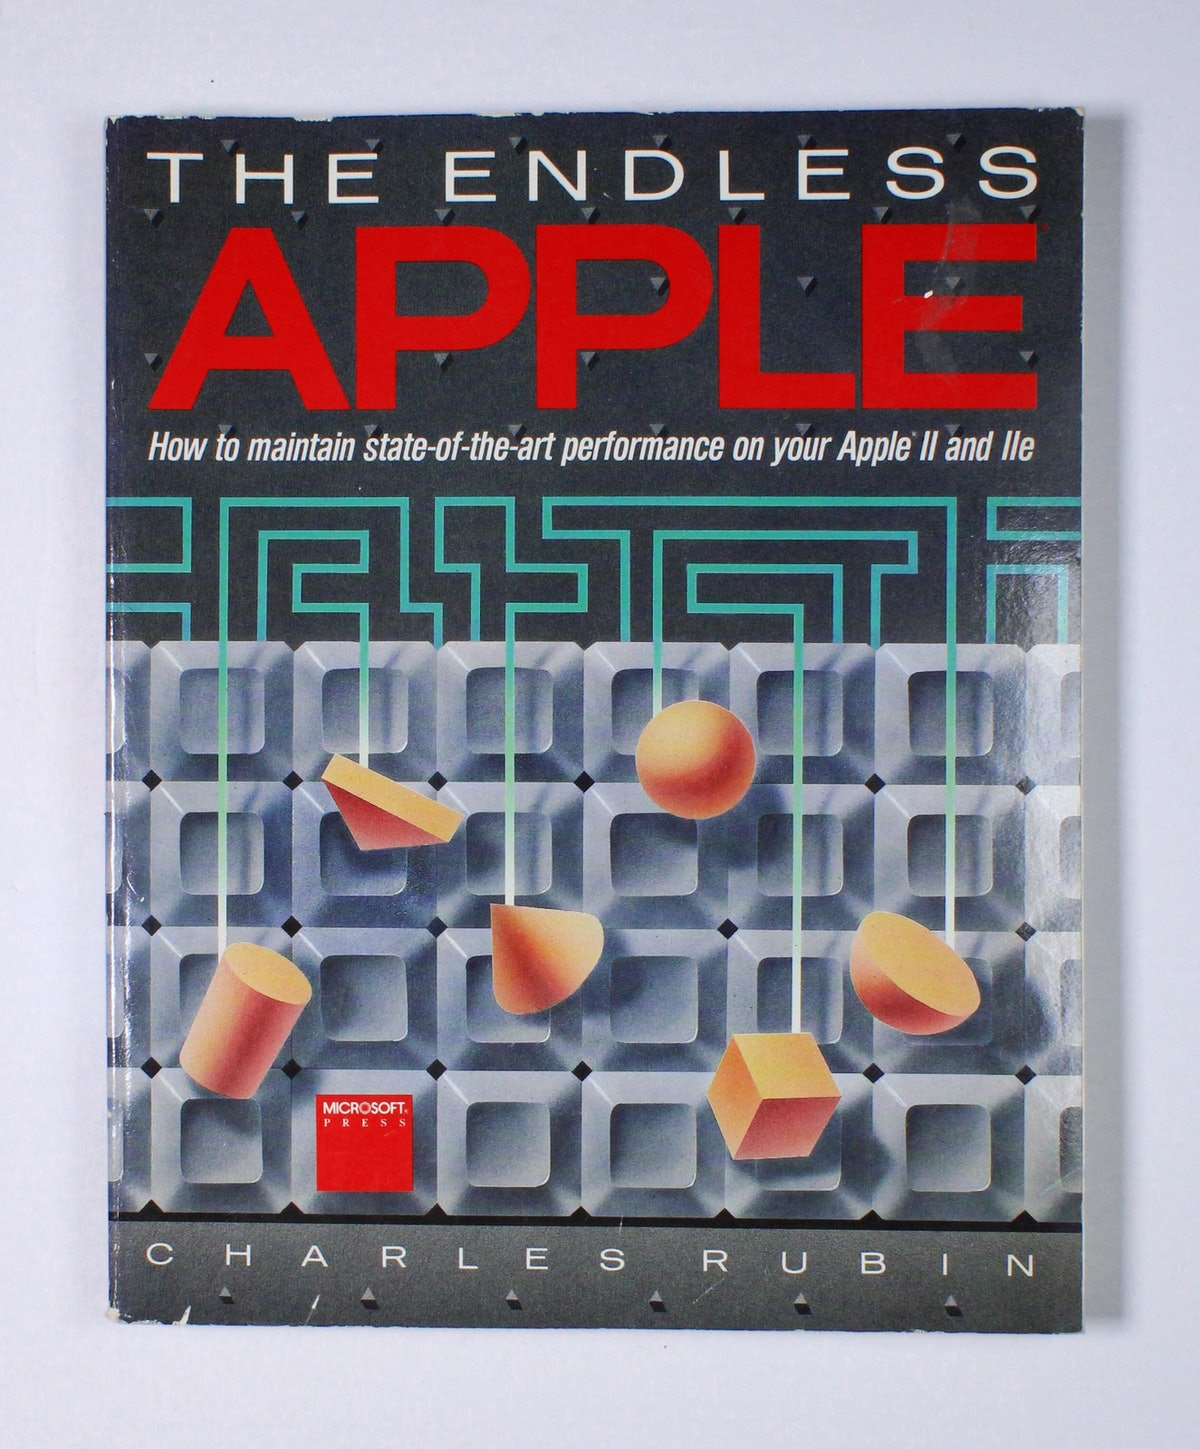 The Endless Apple